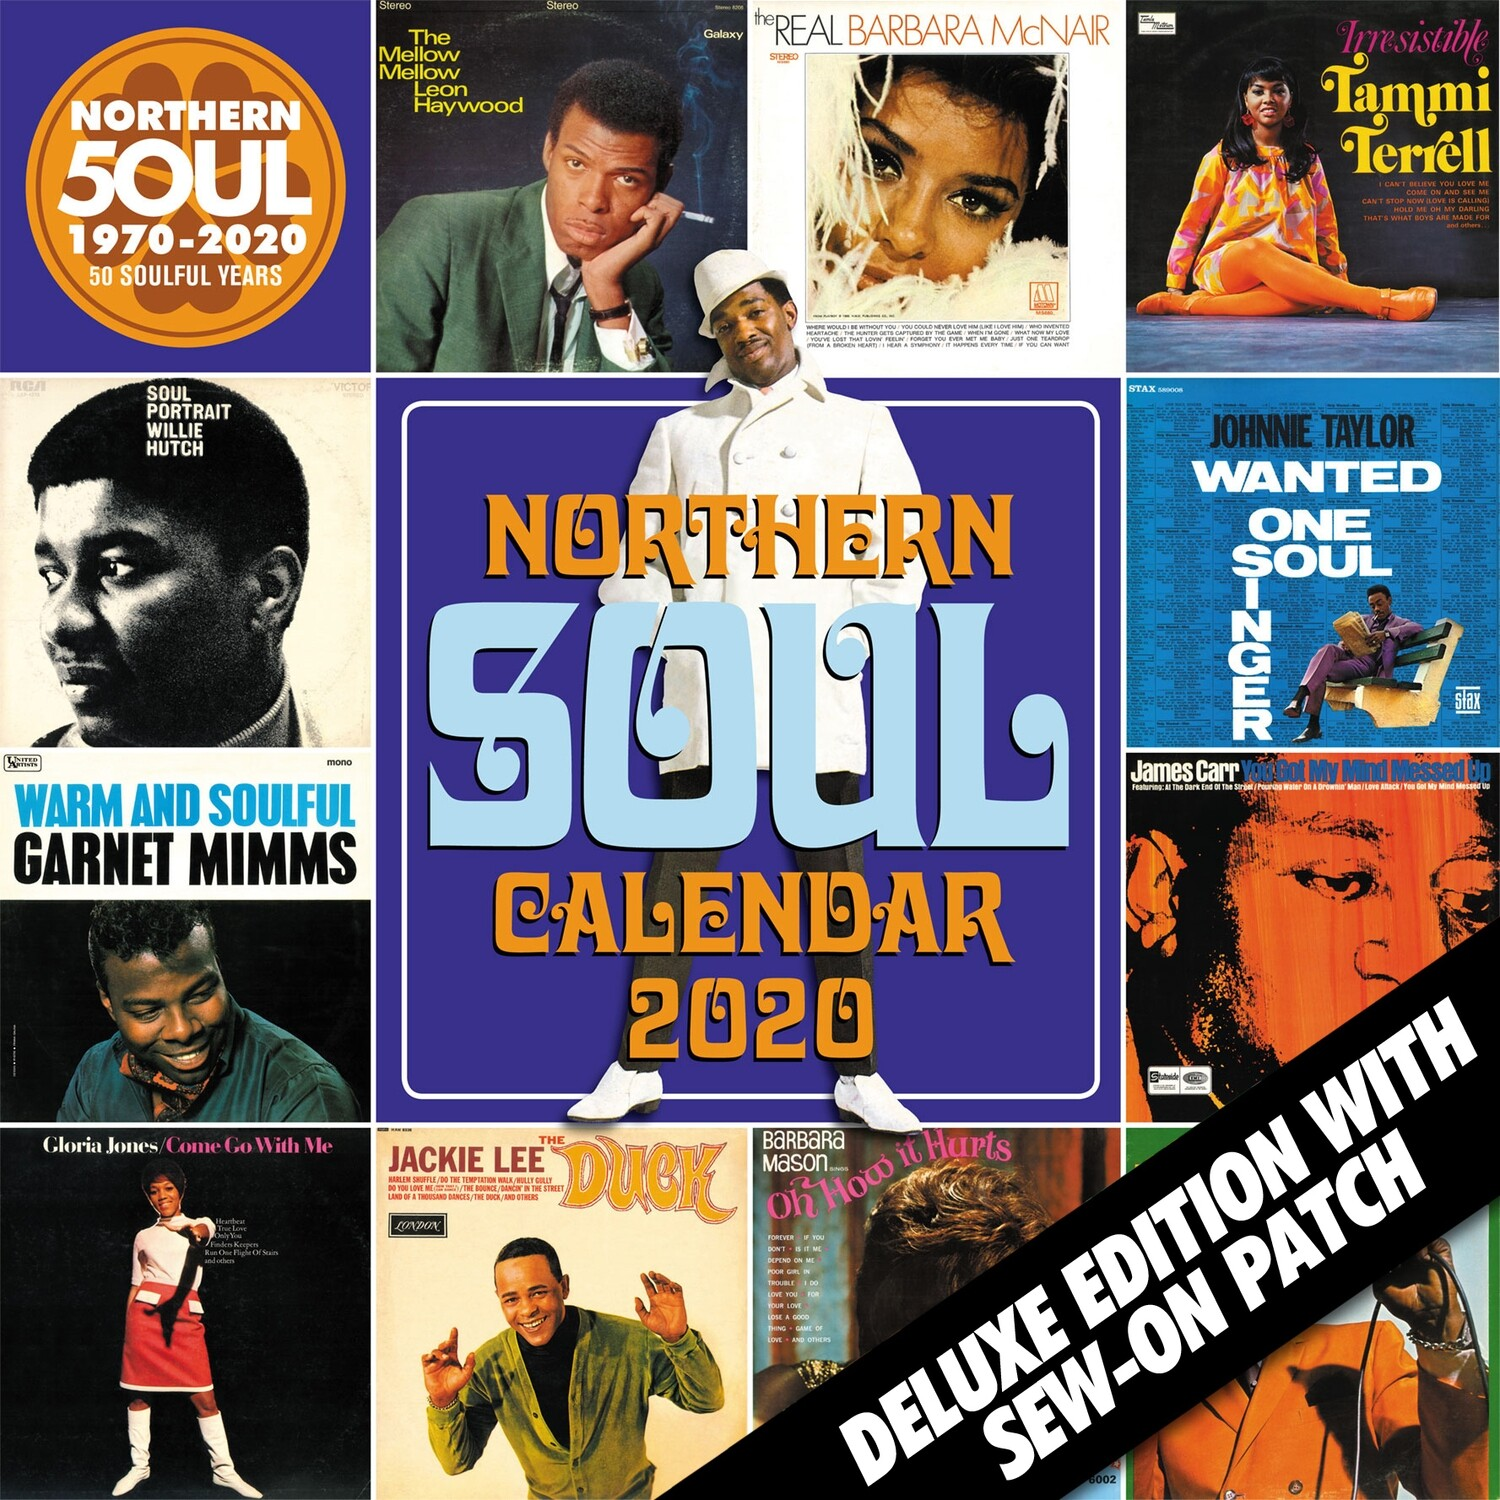 Northern Soul Calendar 2020 - Deluxe Edition / SOLD OUT